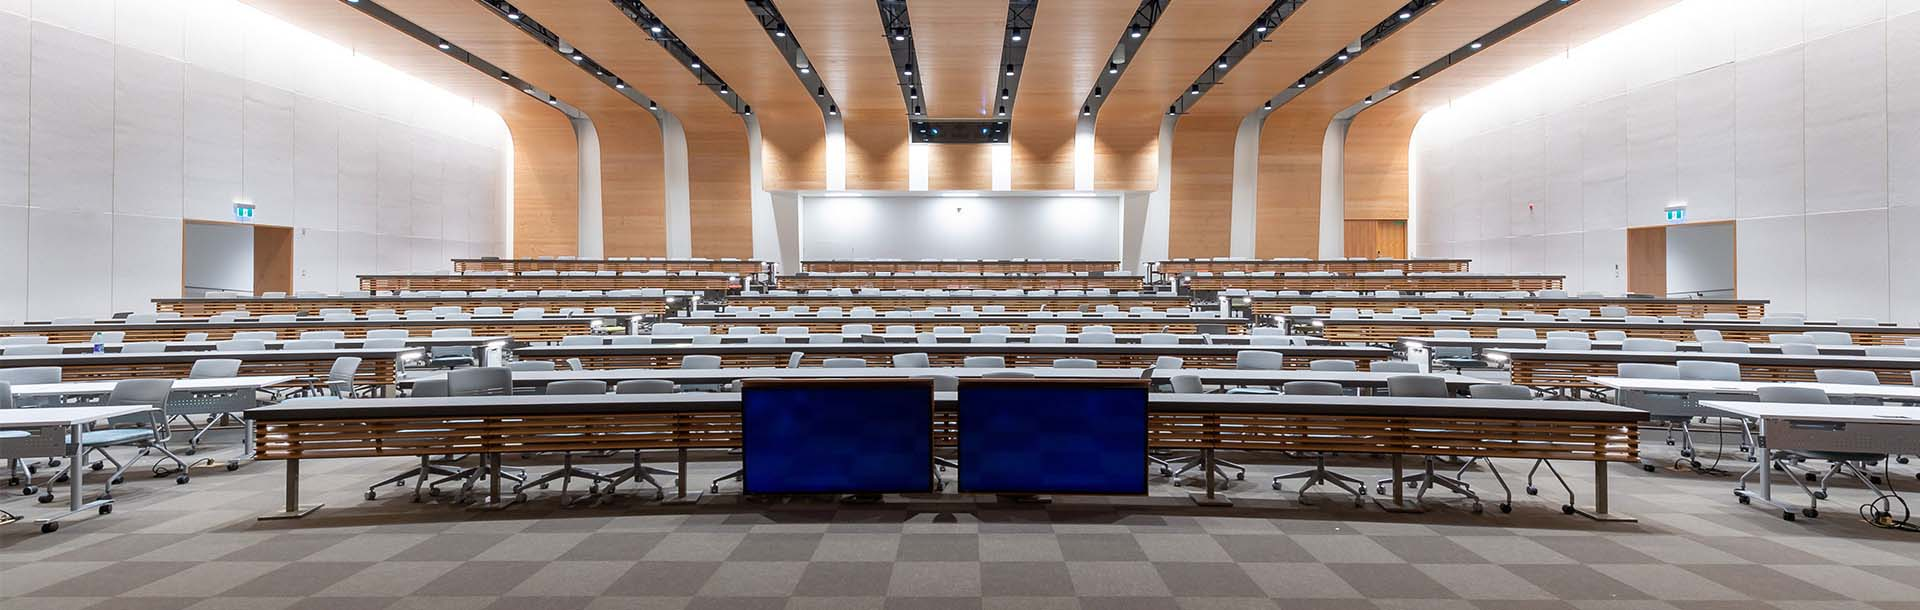 Commons 201 Lecture Theatre